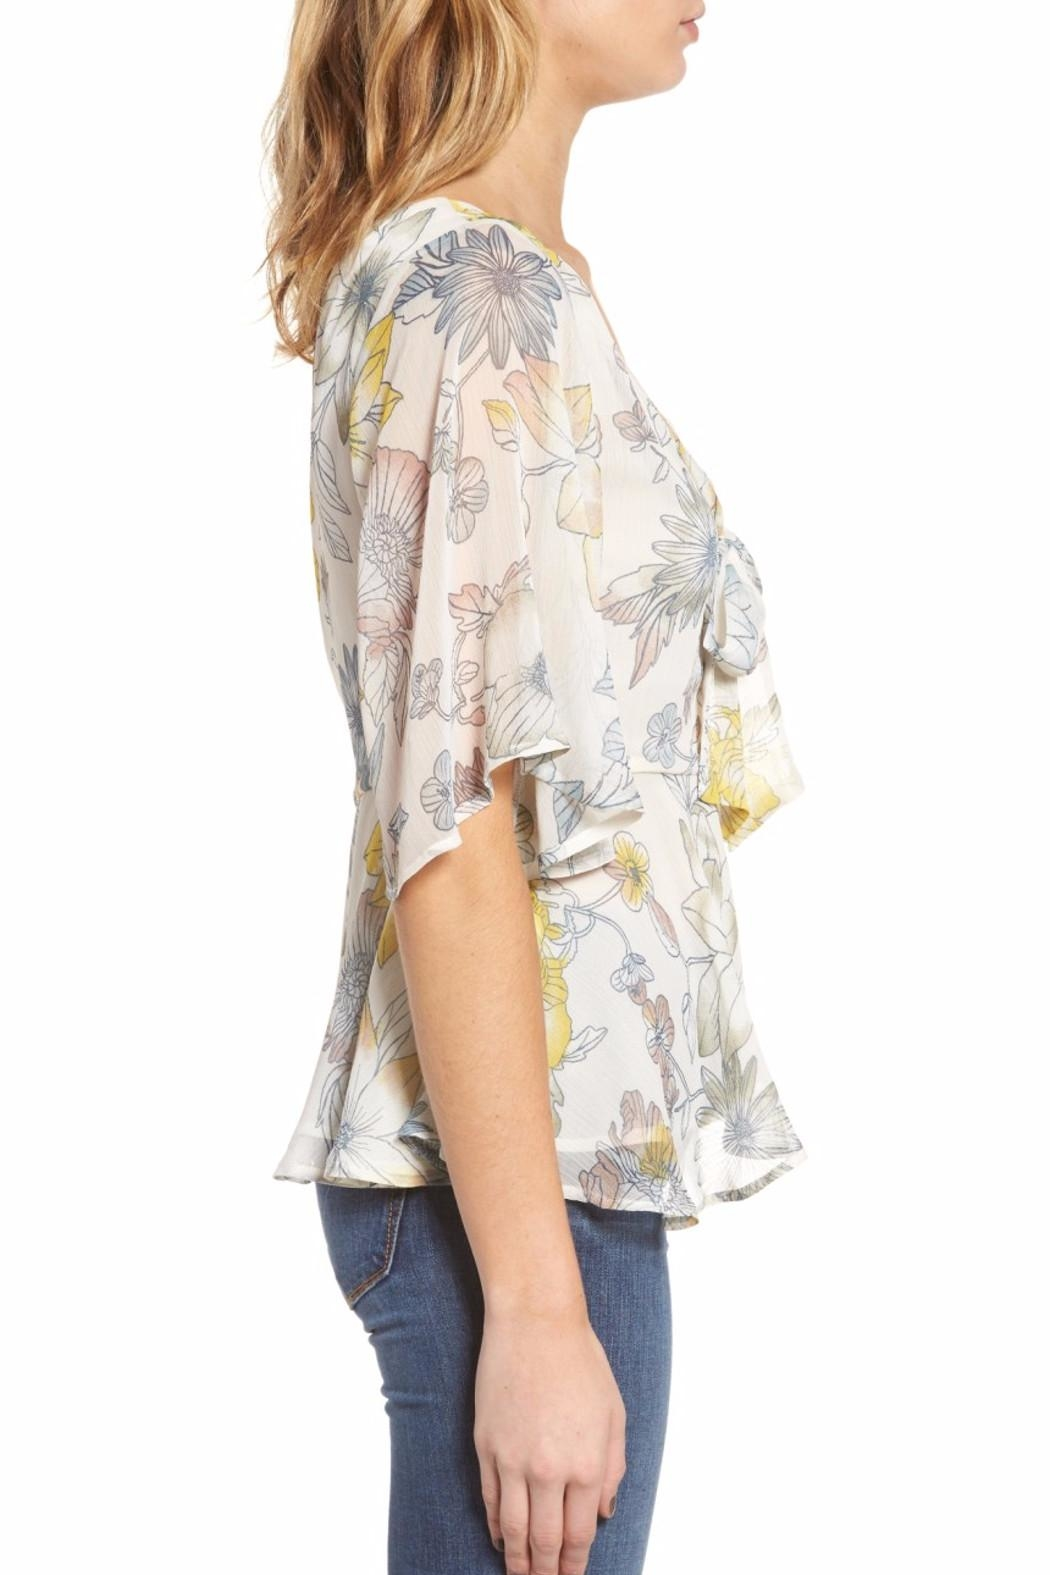 Cupcakes & Cashmere Keenan Floral Blouse - Side Cropped Image